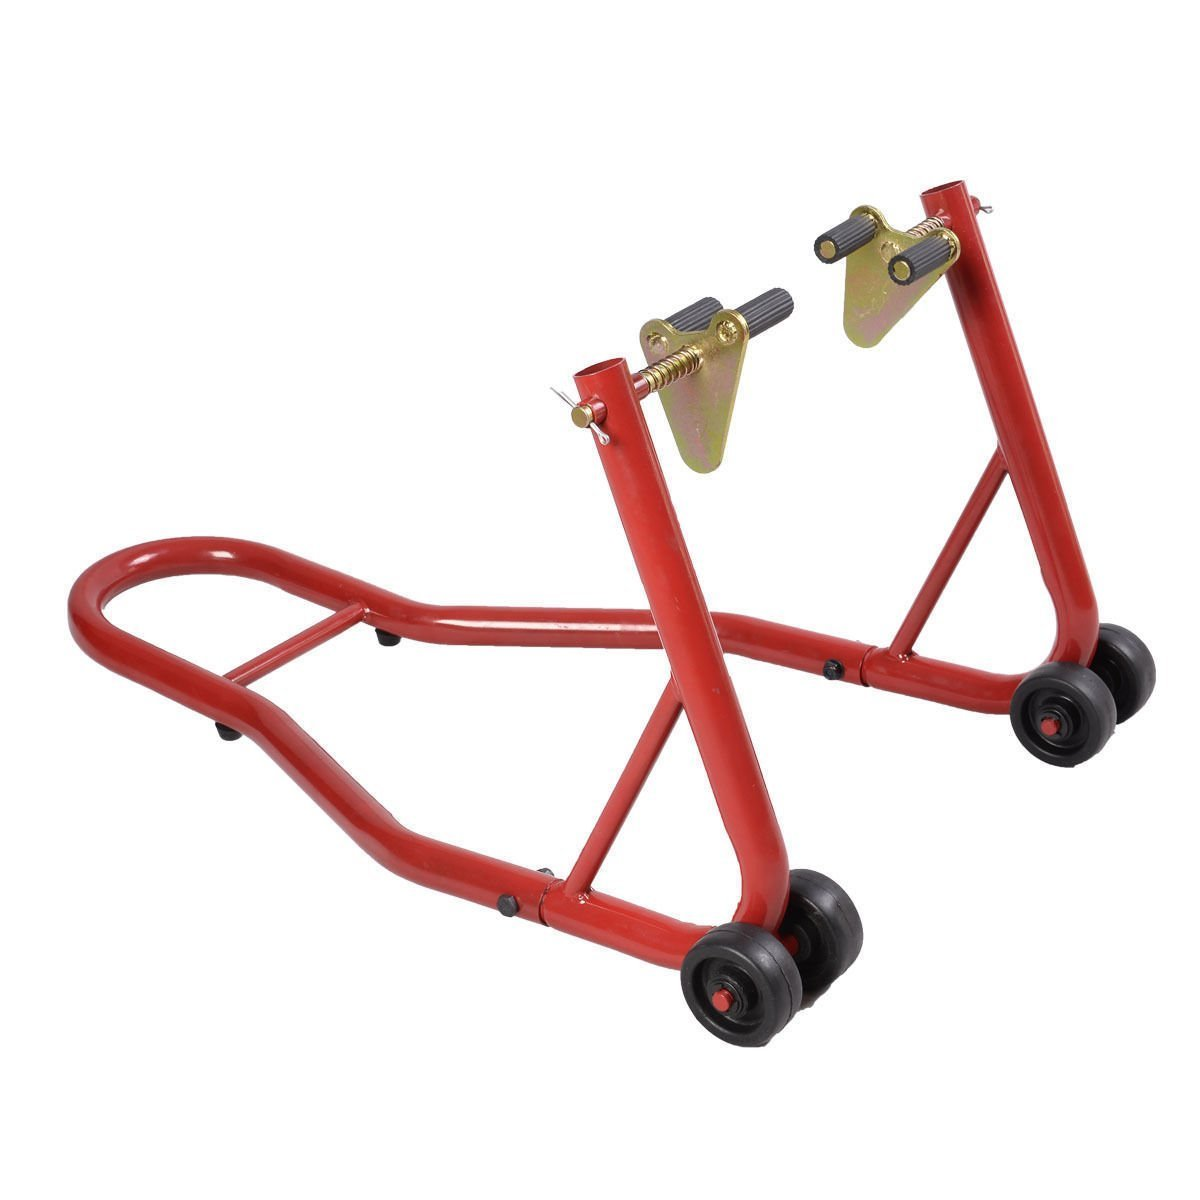 Goplus Motorcycle Stand Front Wheel Lift Fork Swingarm Stands Paddock Stands Forklift Auto Bike Shop (Red, Front Stand)